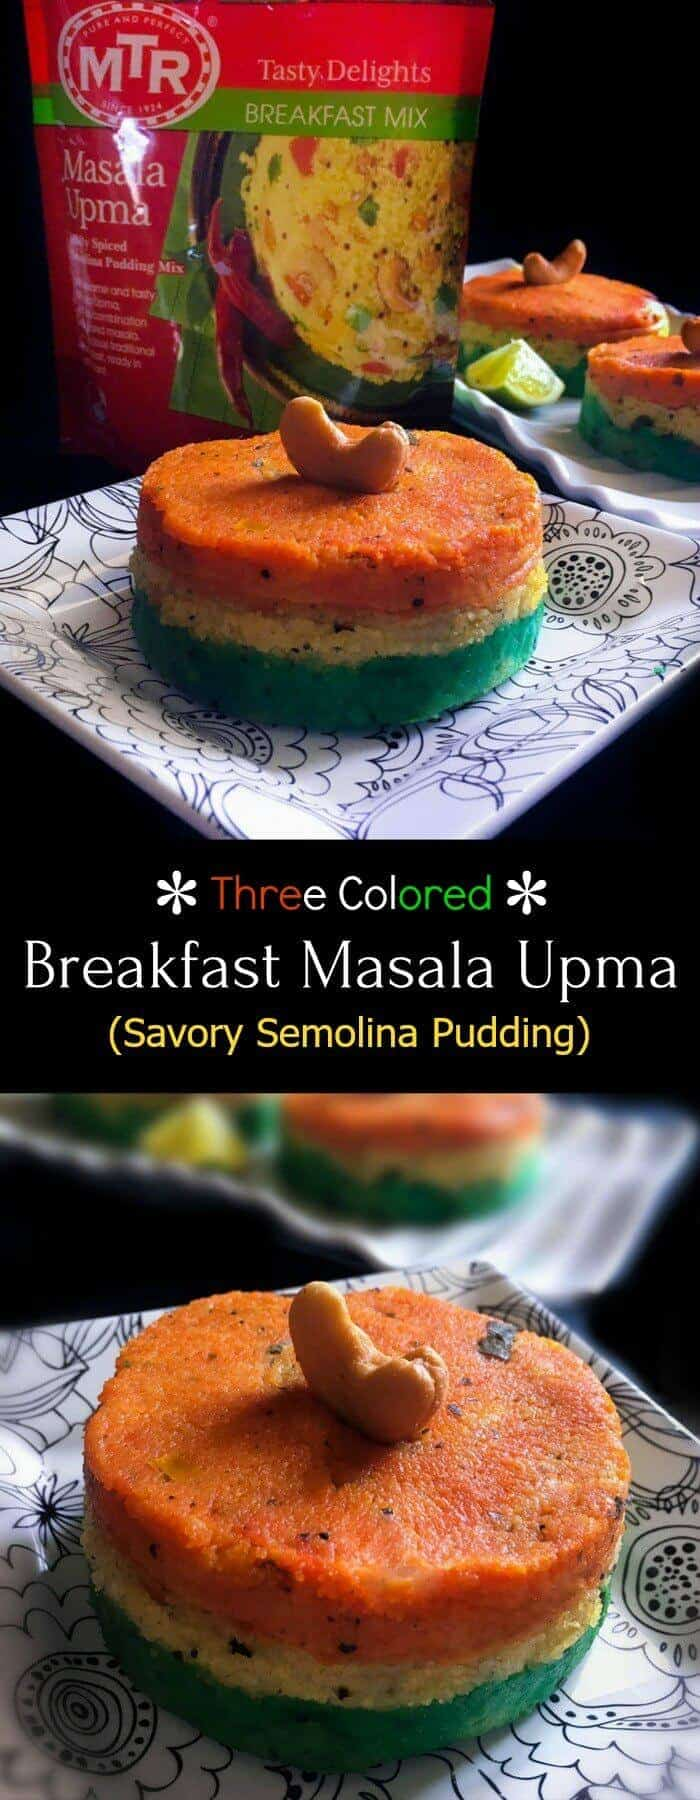 Three Color Breakfast Masala Upma : #ad #upma #breakfast #indian #recipe #mtr